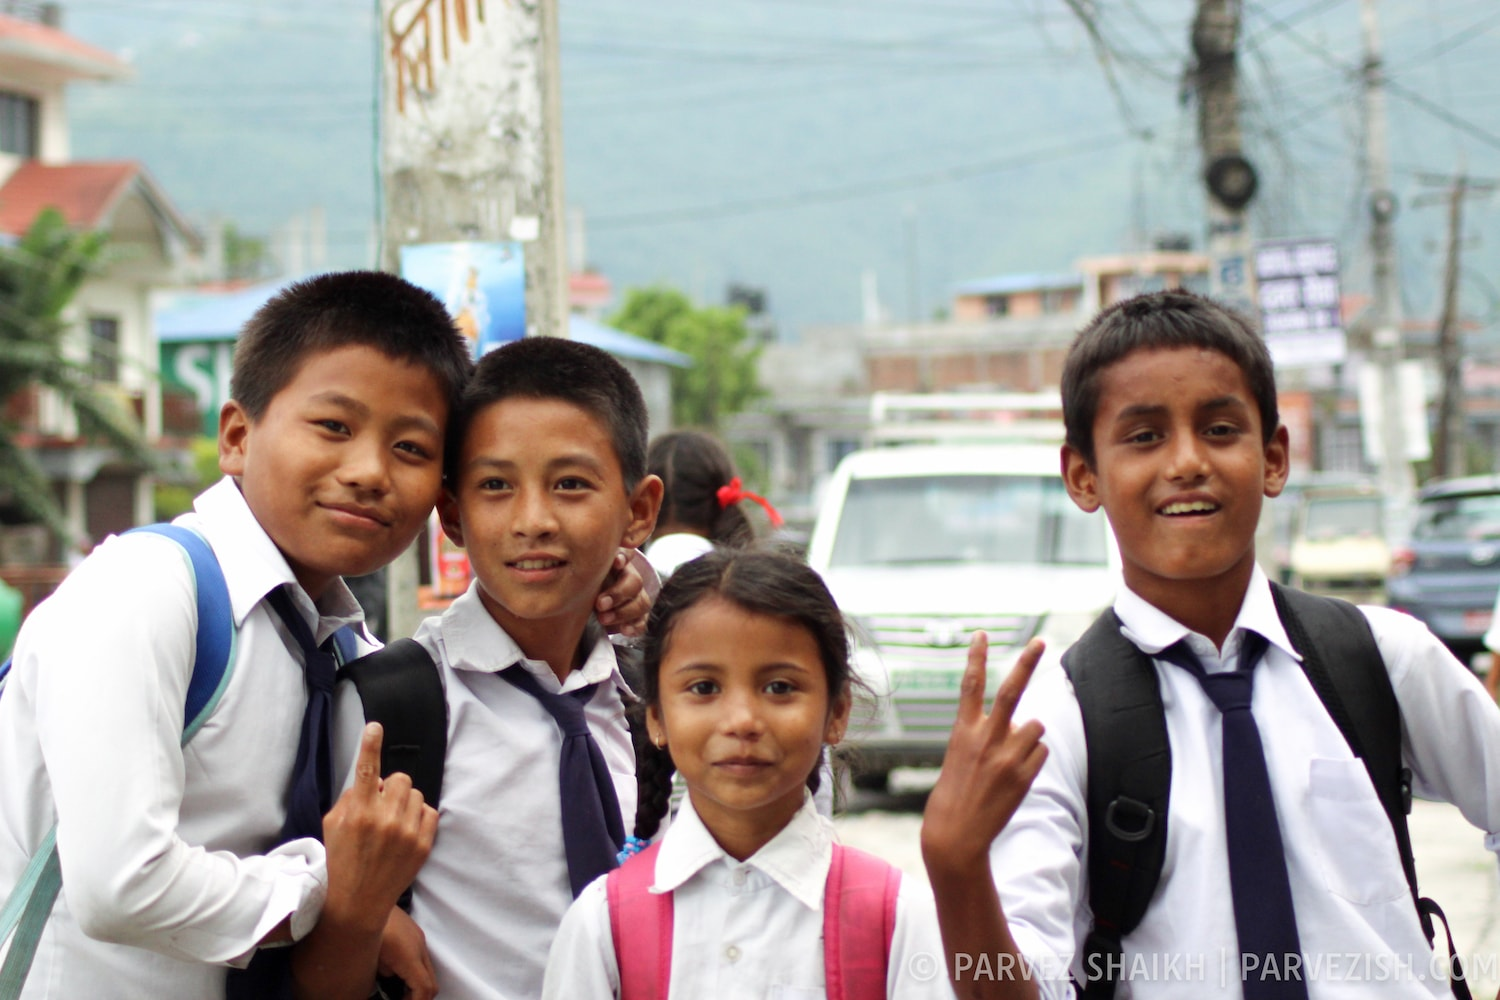 Children Returning from School in Pokhara, Nepal